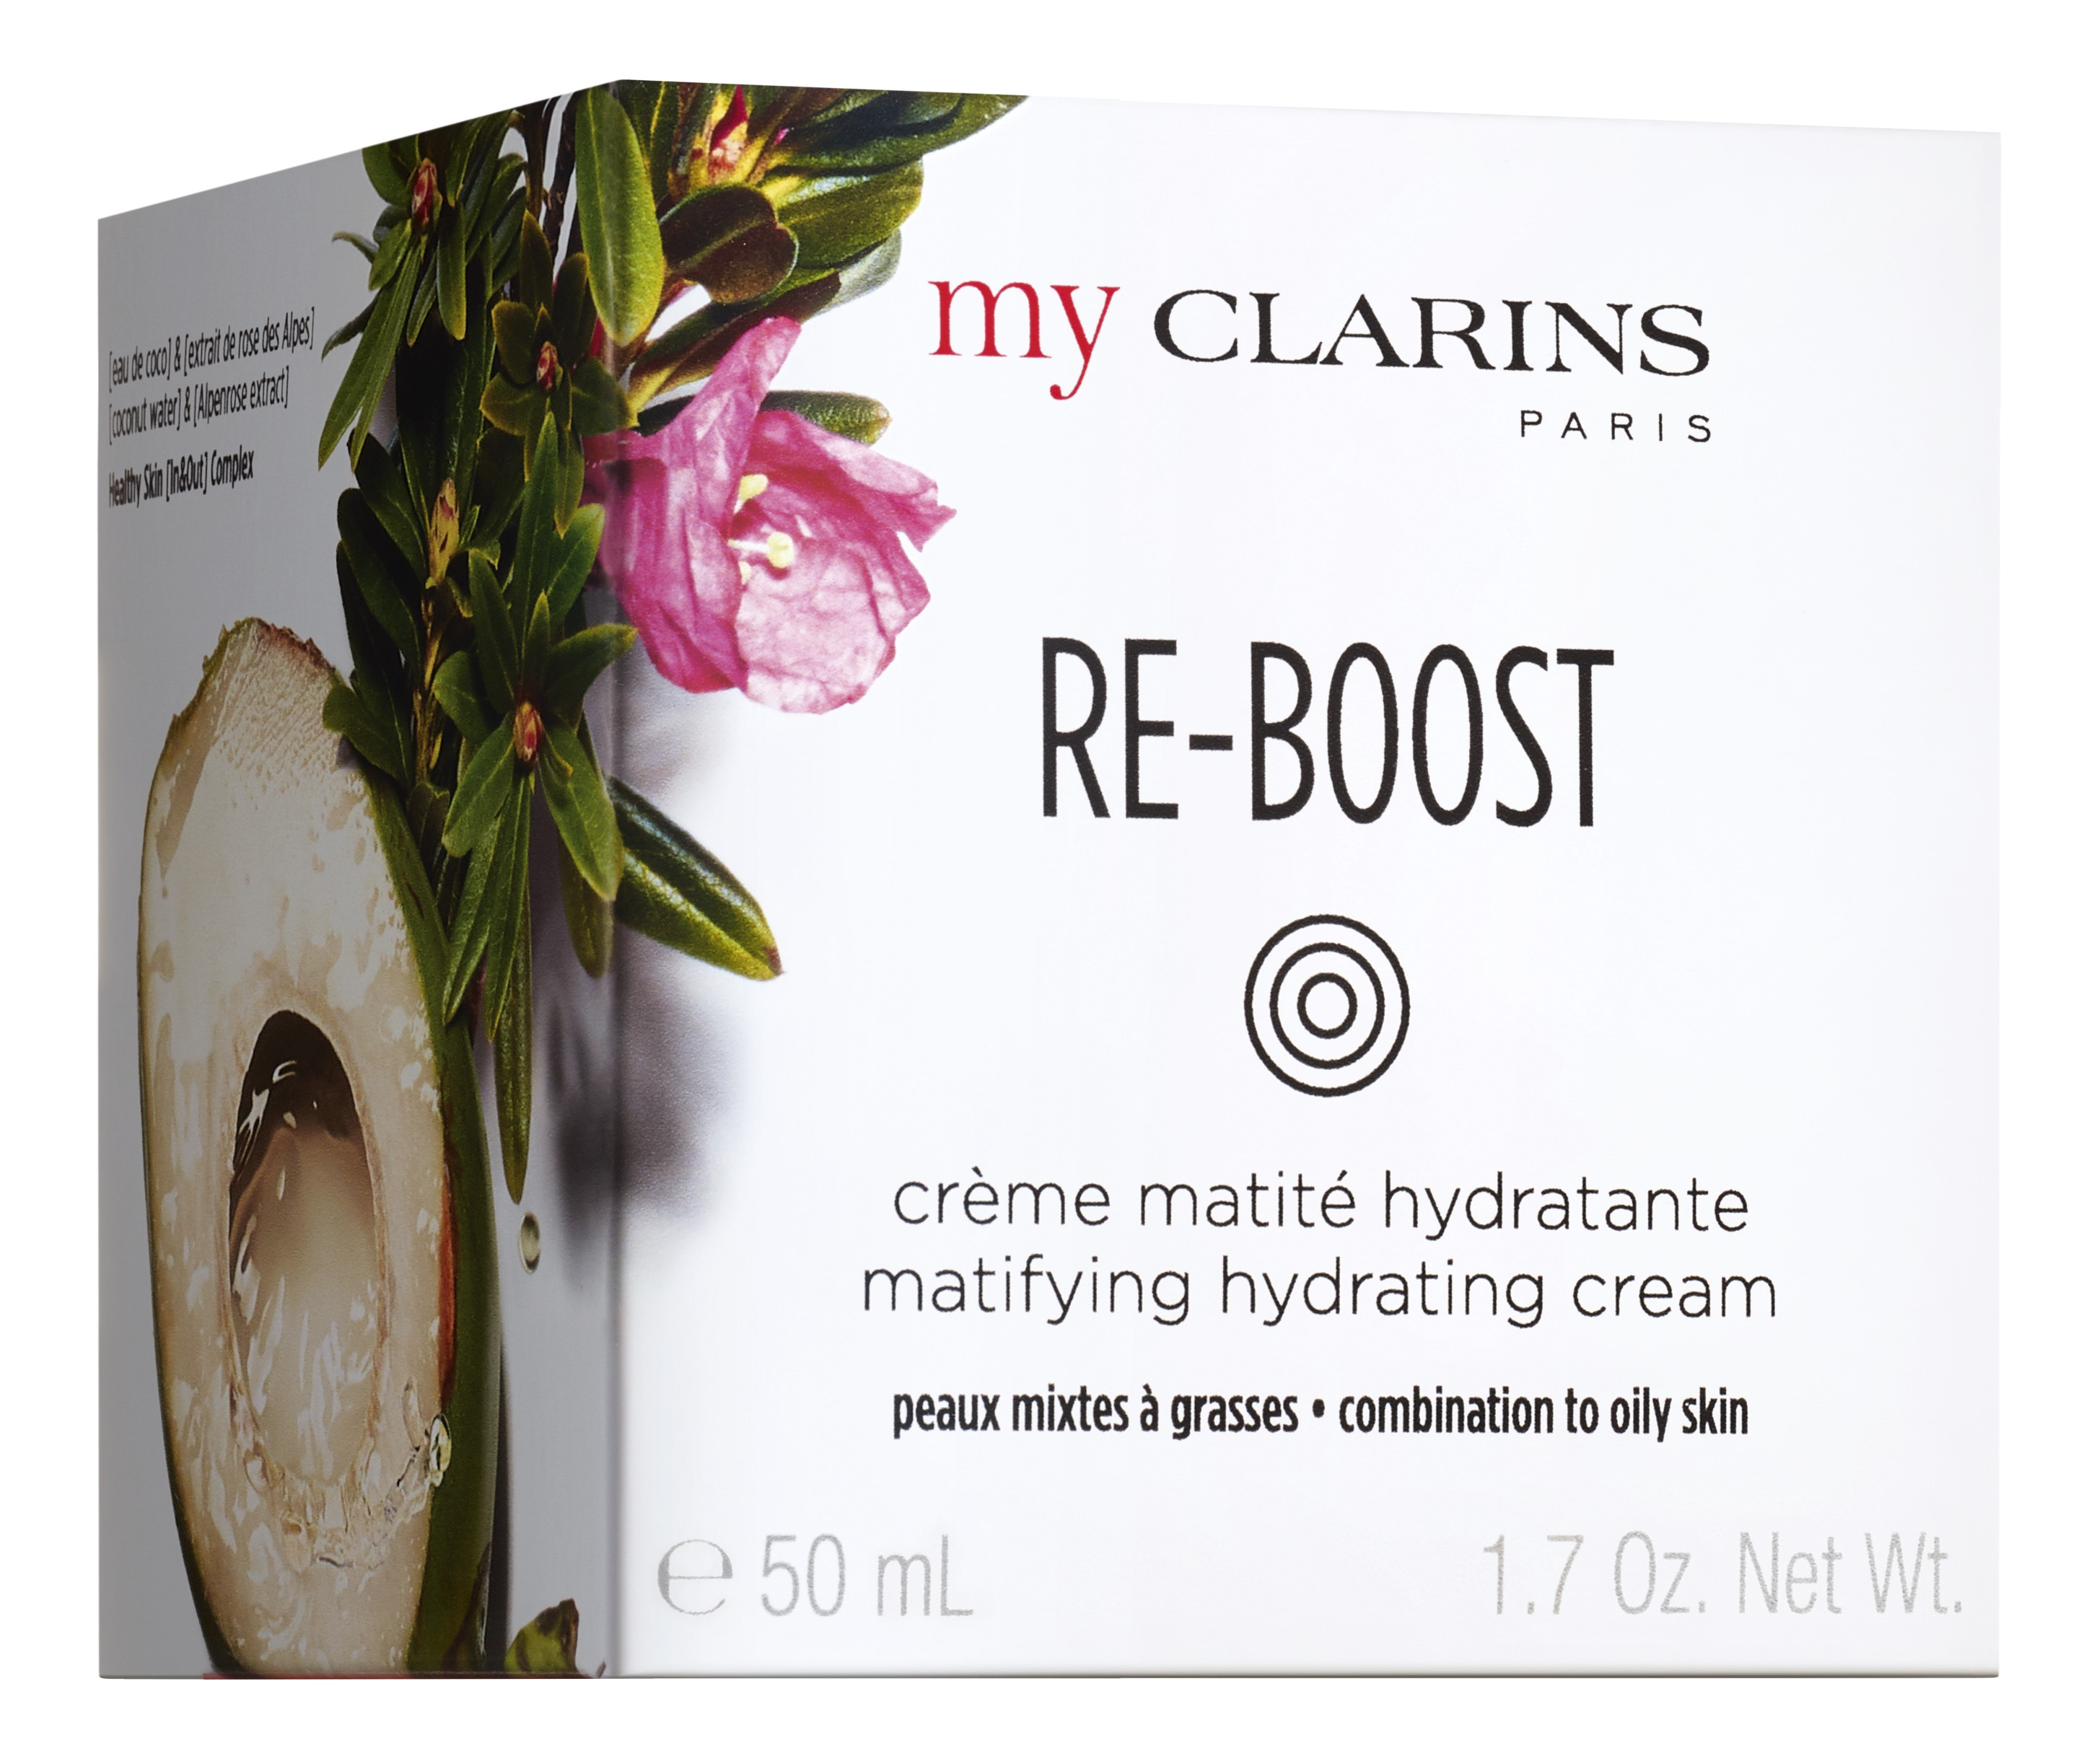 My Clarins Re-Boost Hydrating Cream